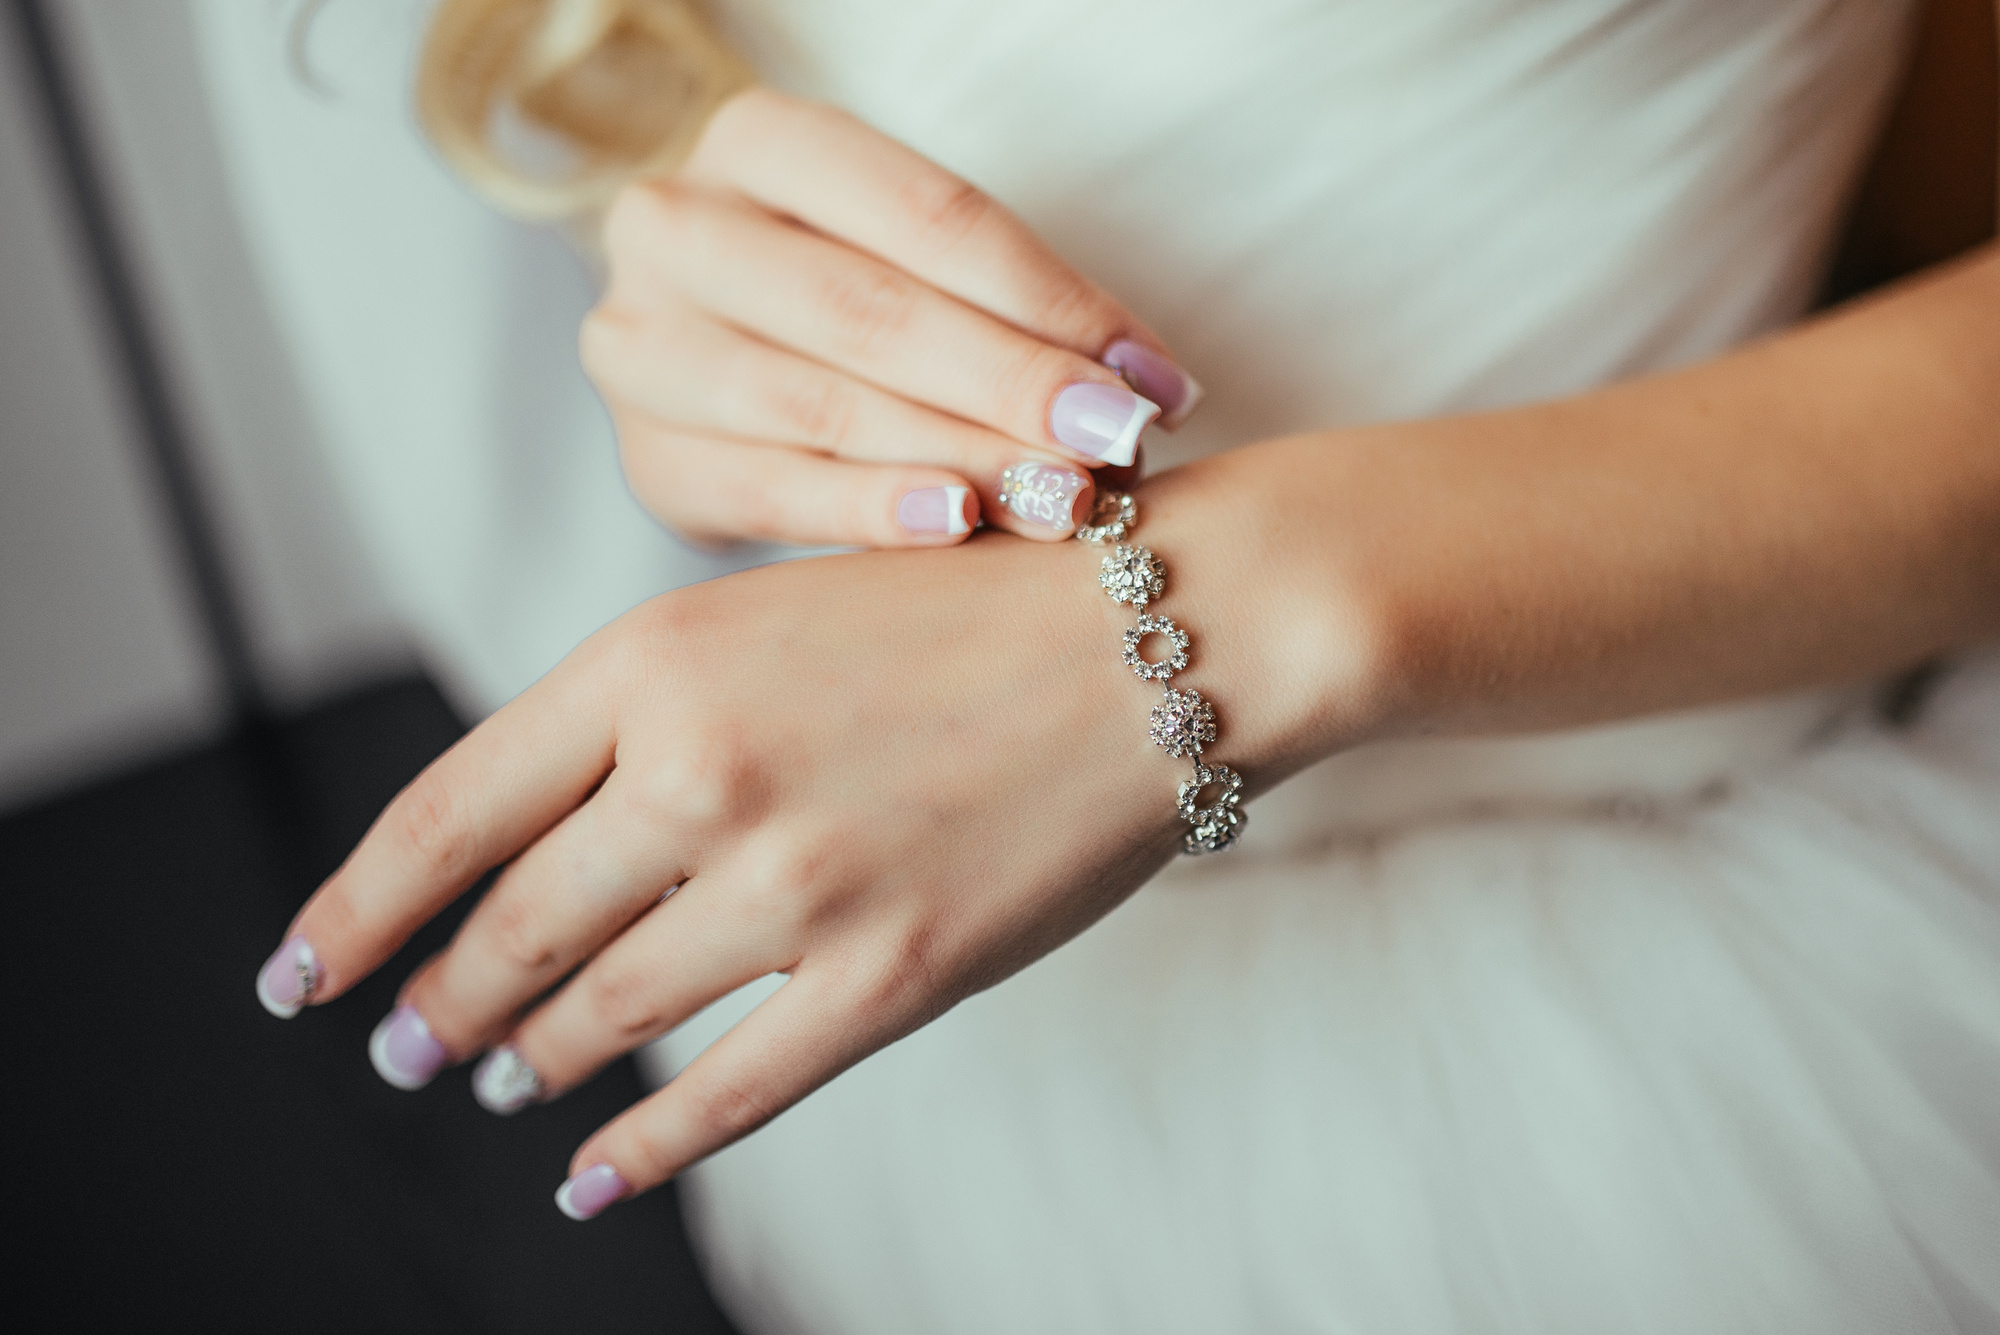 7 Interesting Facts About Jewelry You Need to Know